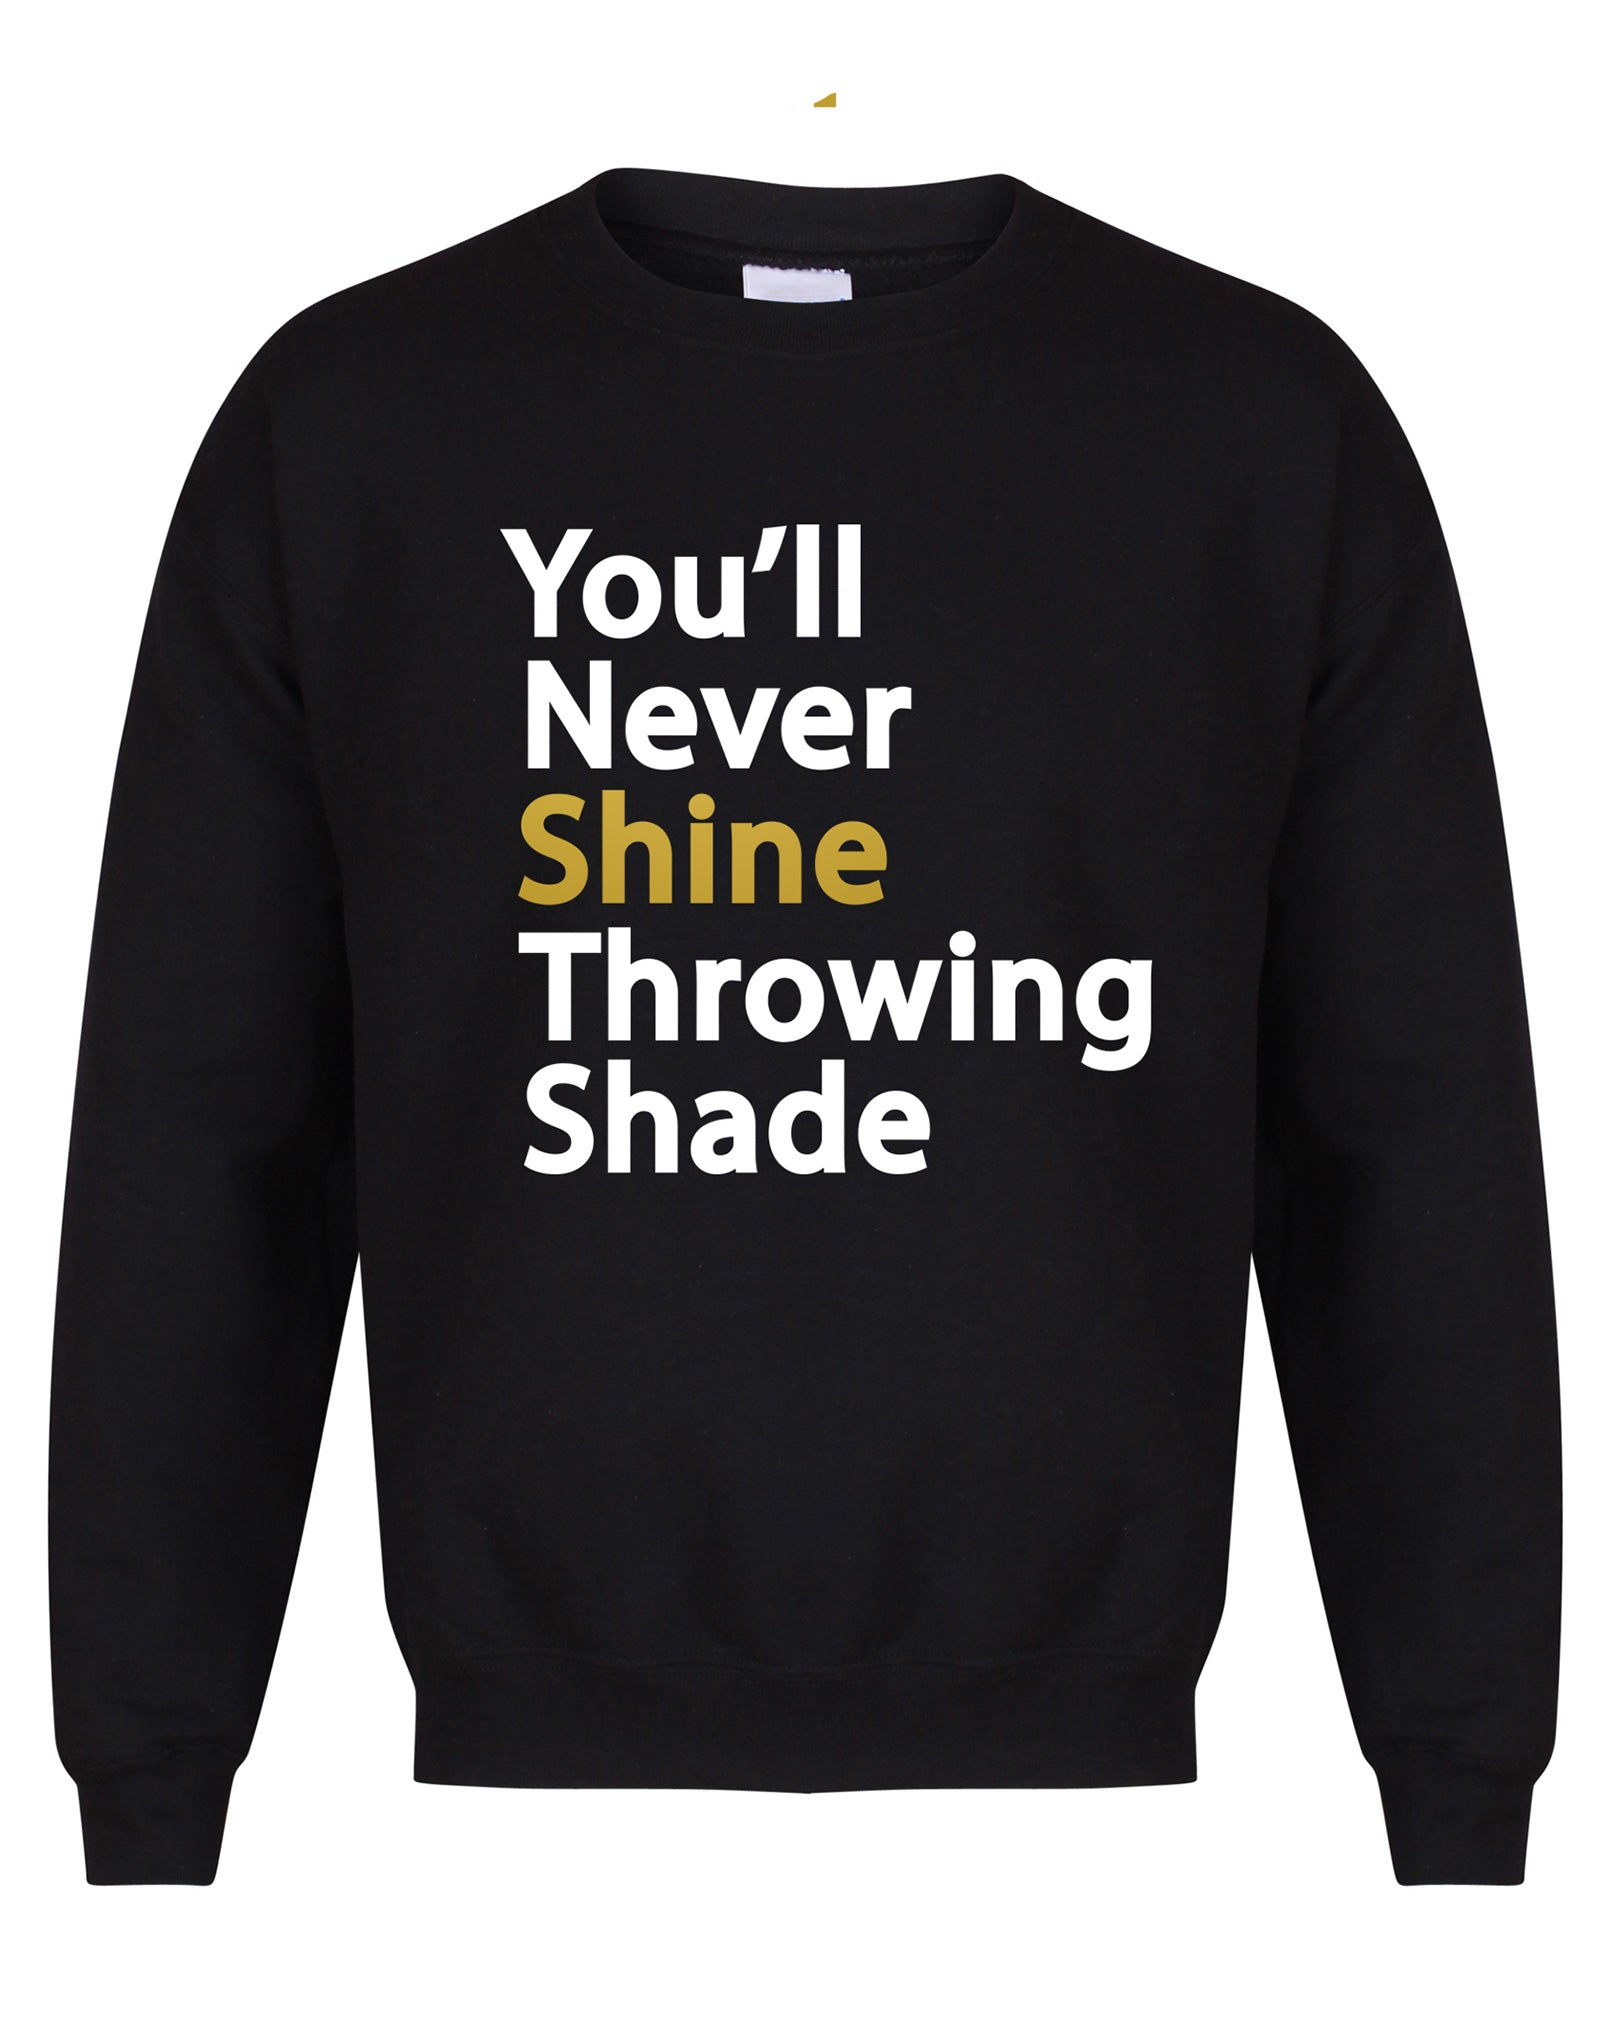 YoullNeverShine-BlackSweater.jpg